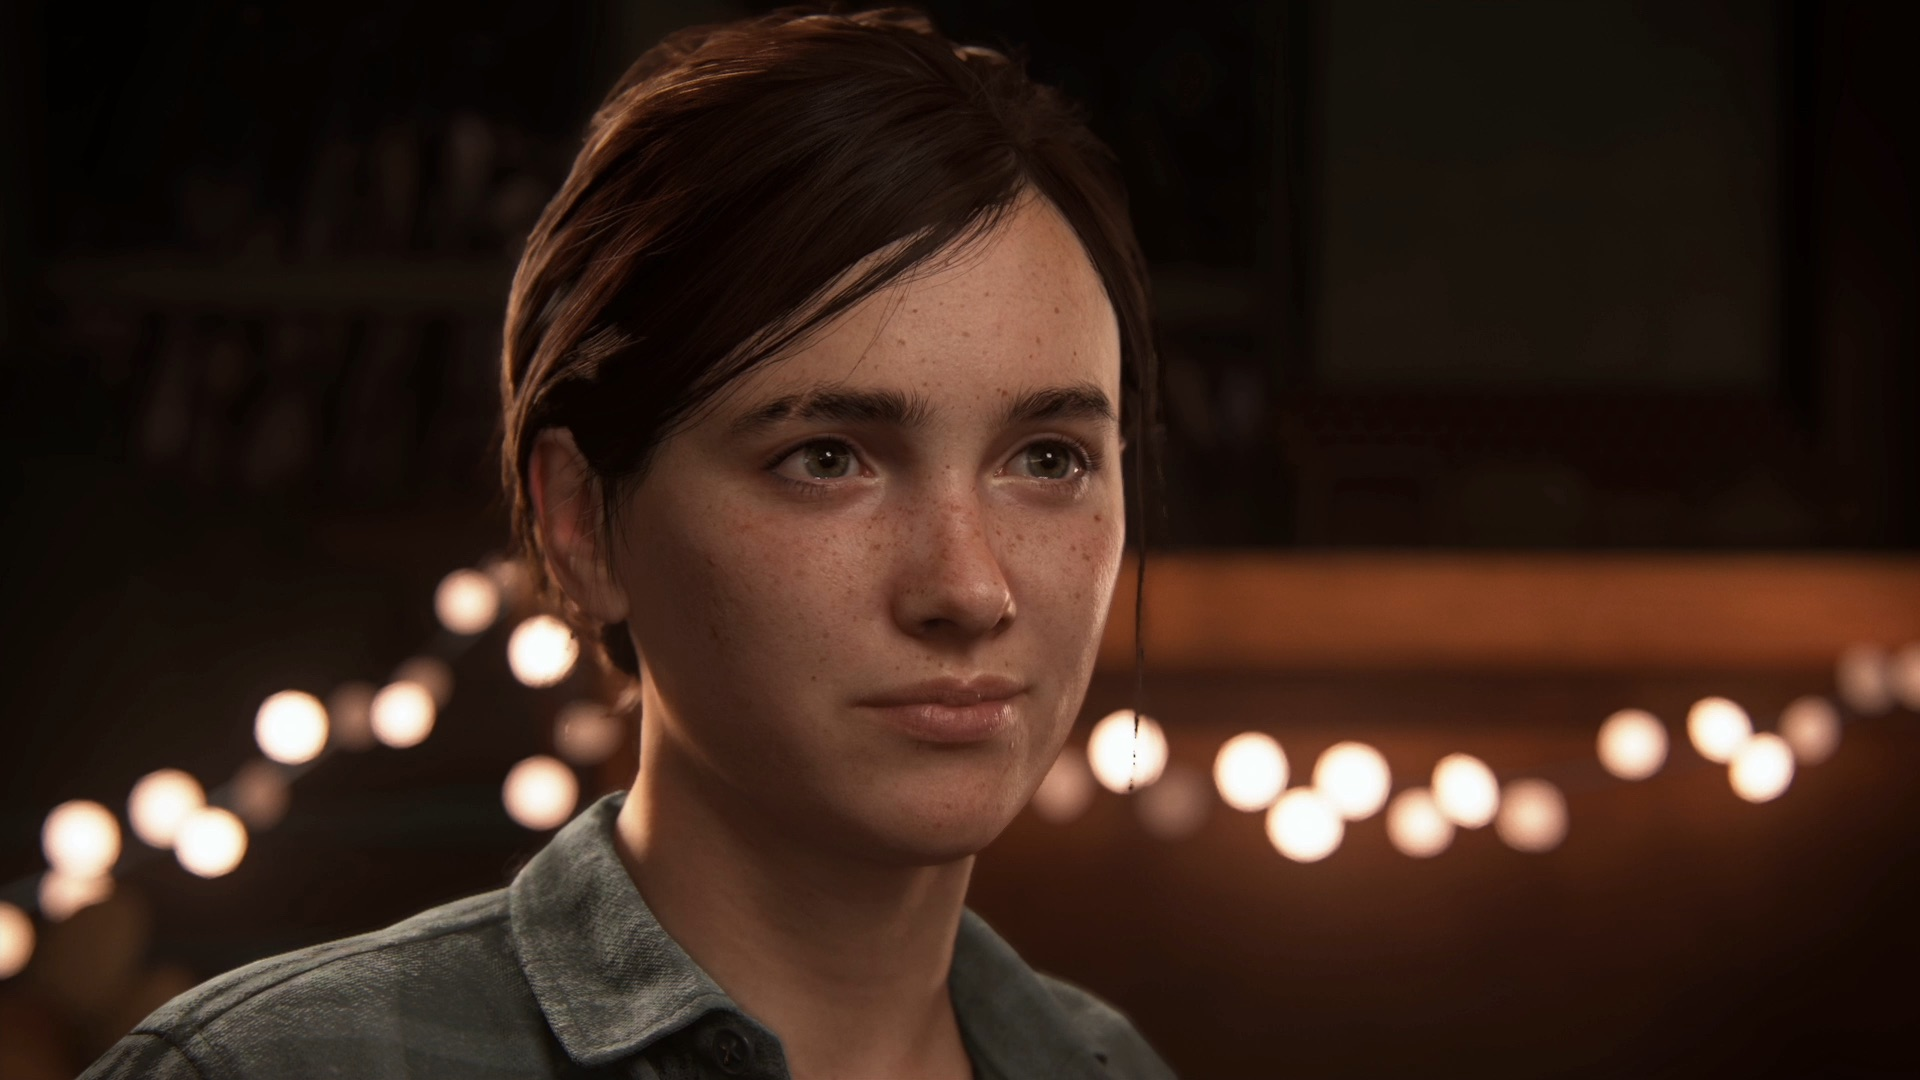 The Last of Us Part 2 will resurface on Sony's next State of Play show